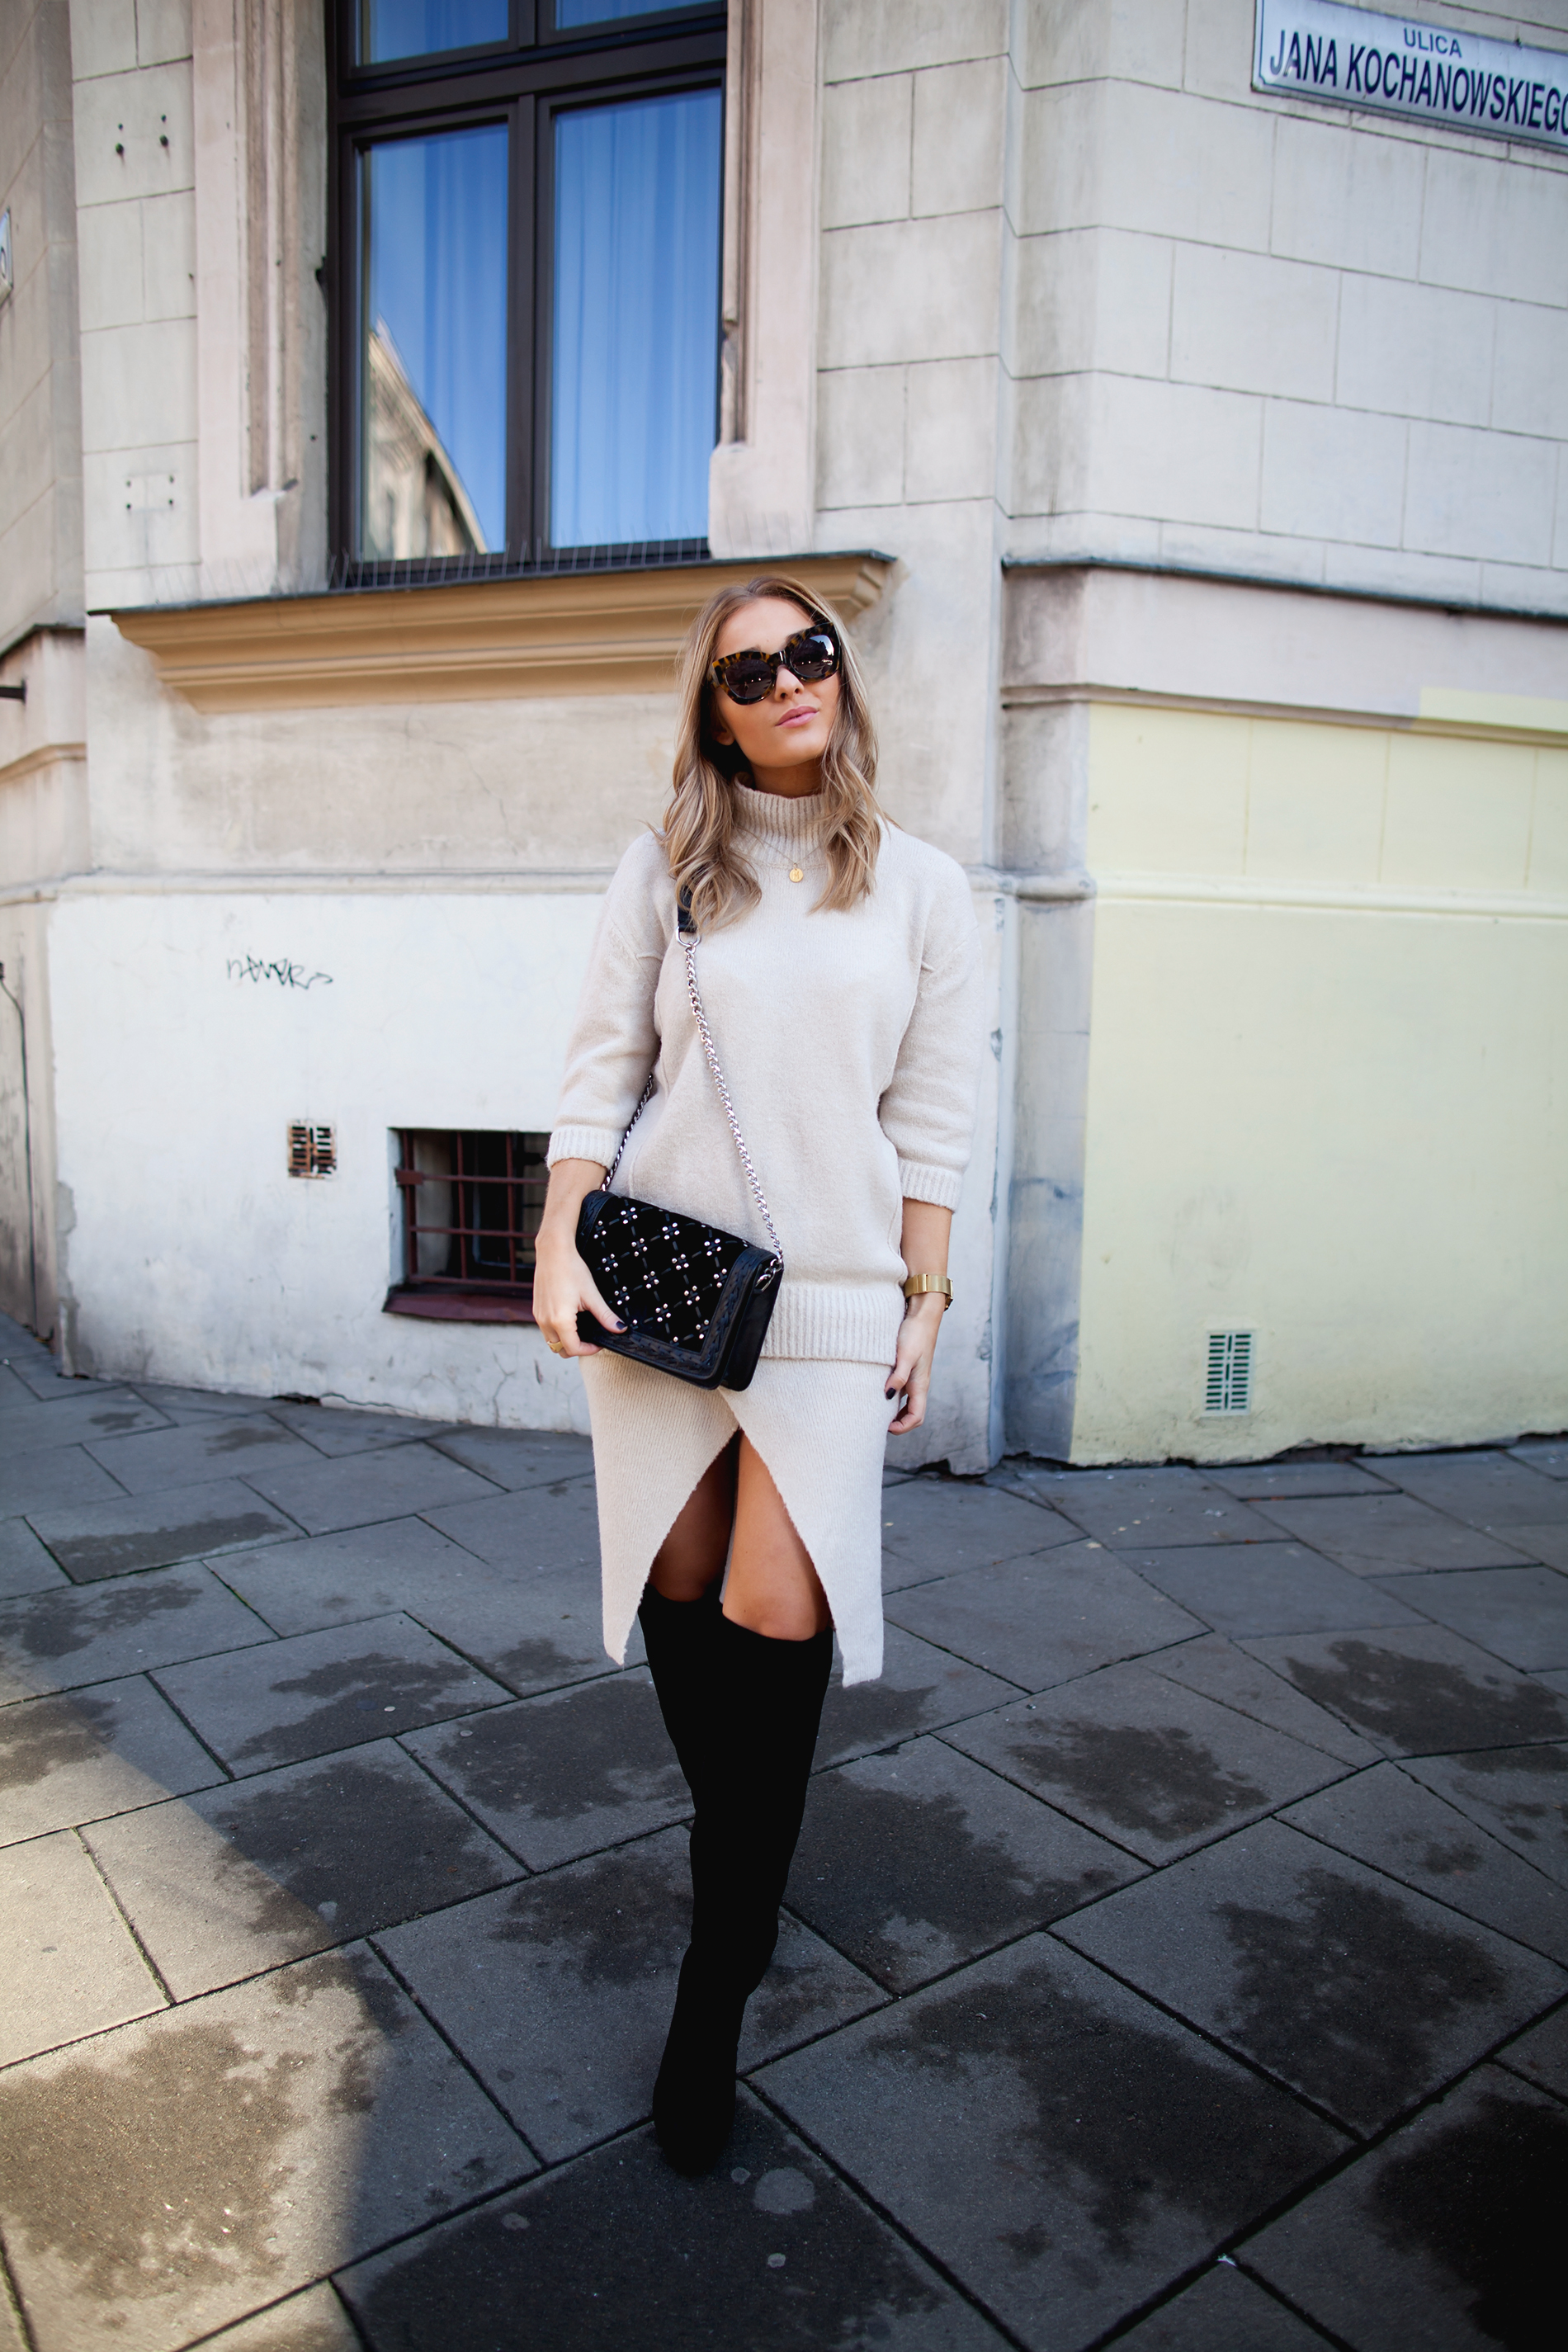 16e04ae78fa Over the knee boots are the perfect addition to a slitted skirt and pale  sweater outfit